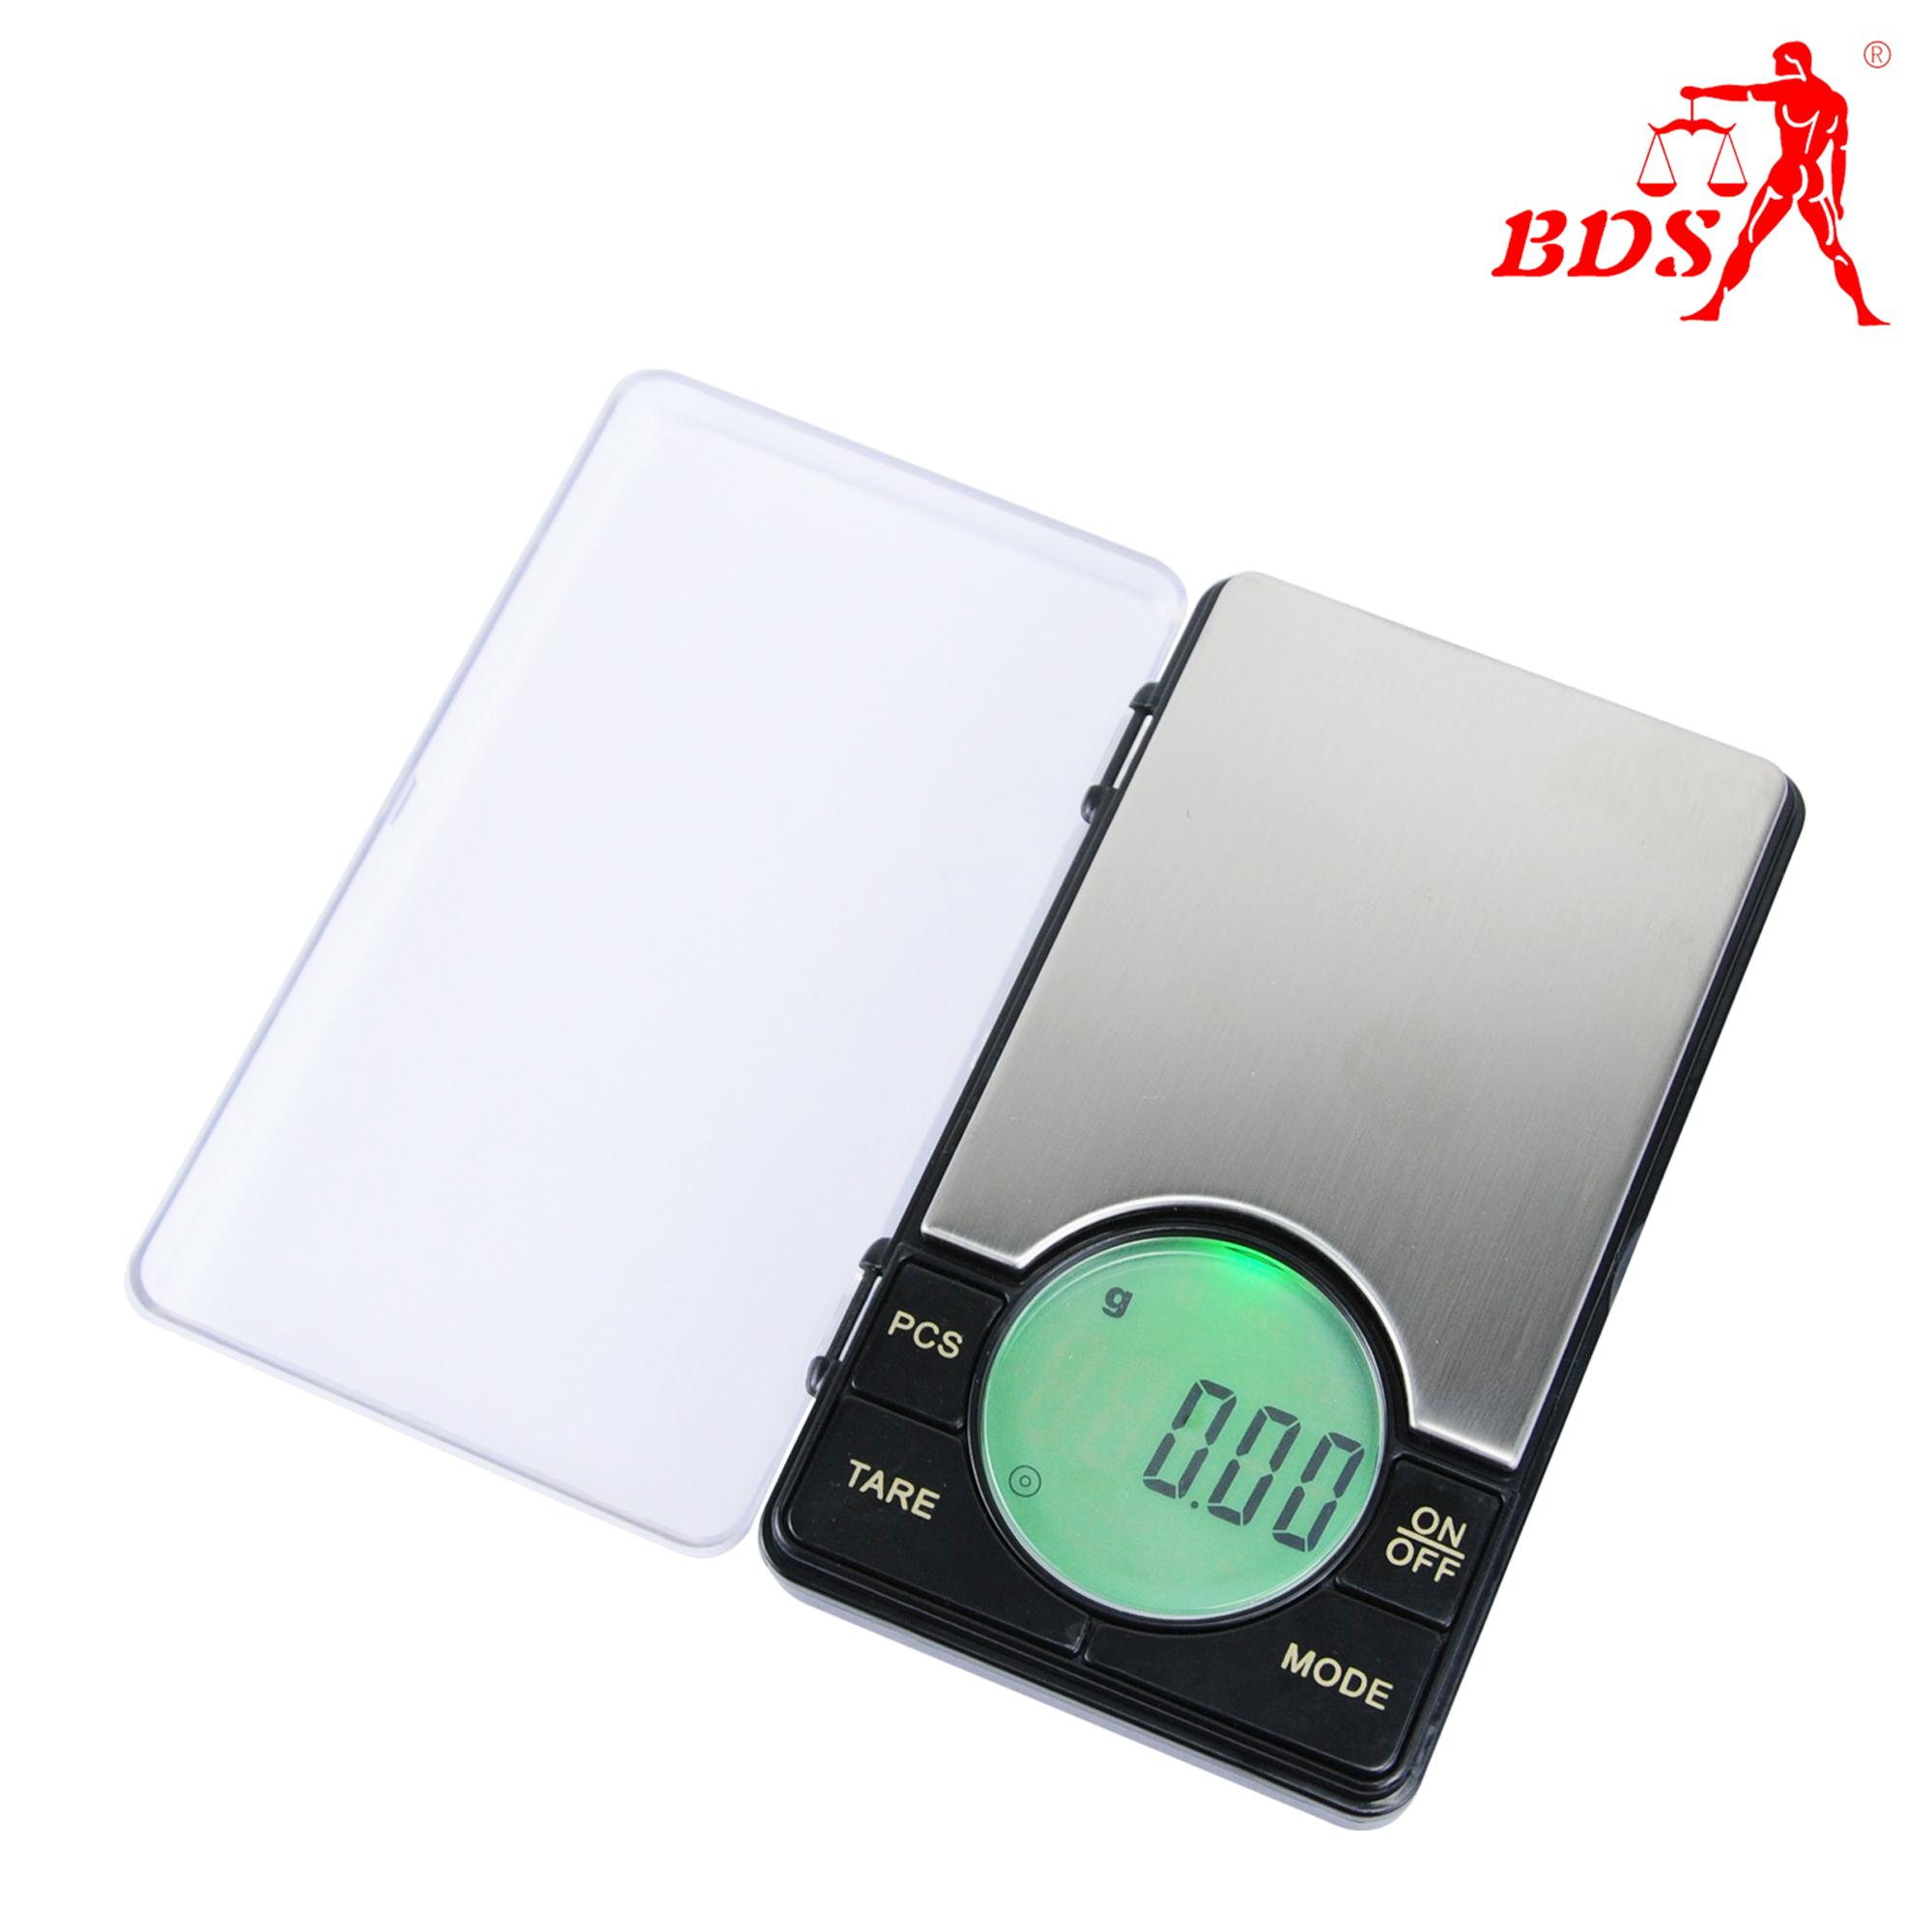 BDS-ES jewelry pocket scale digital jewelry scale 0.01g  2